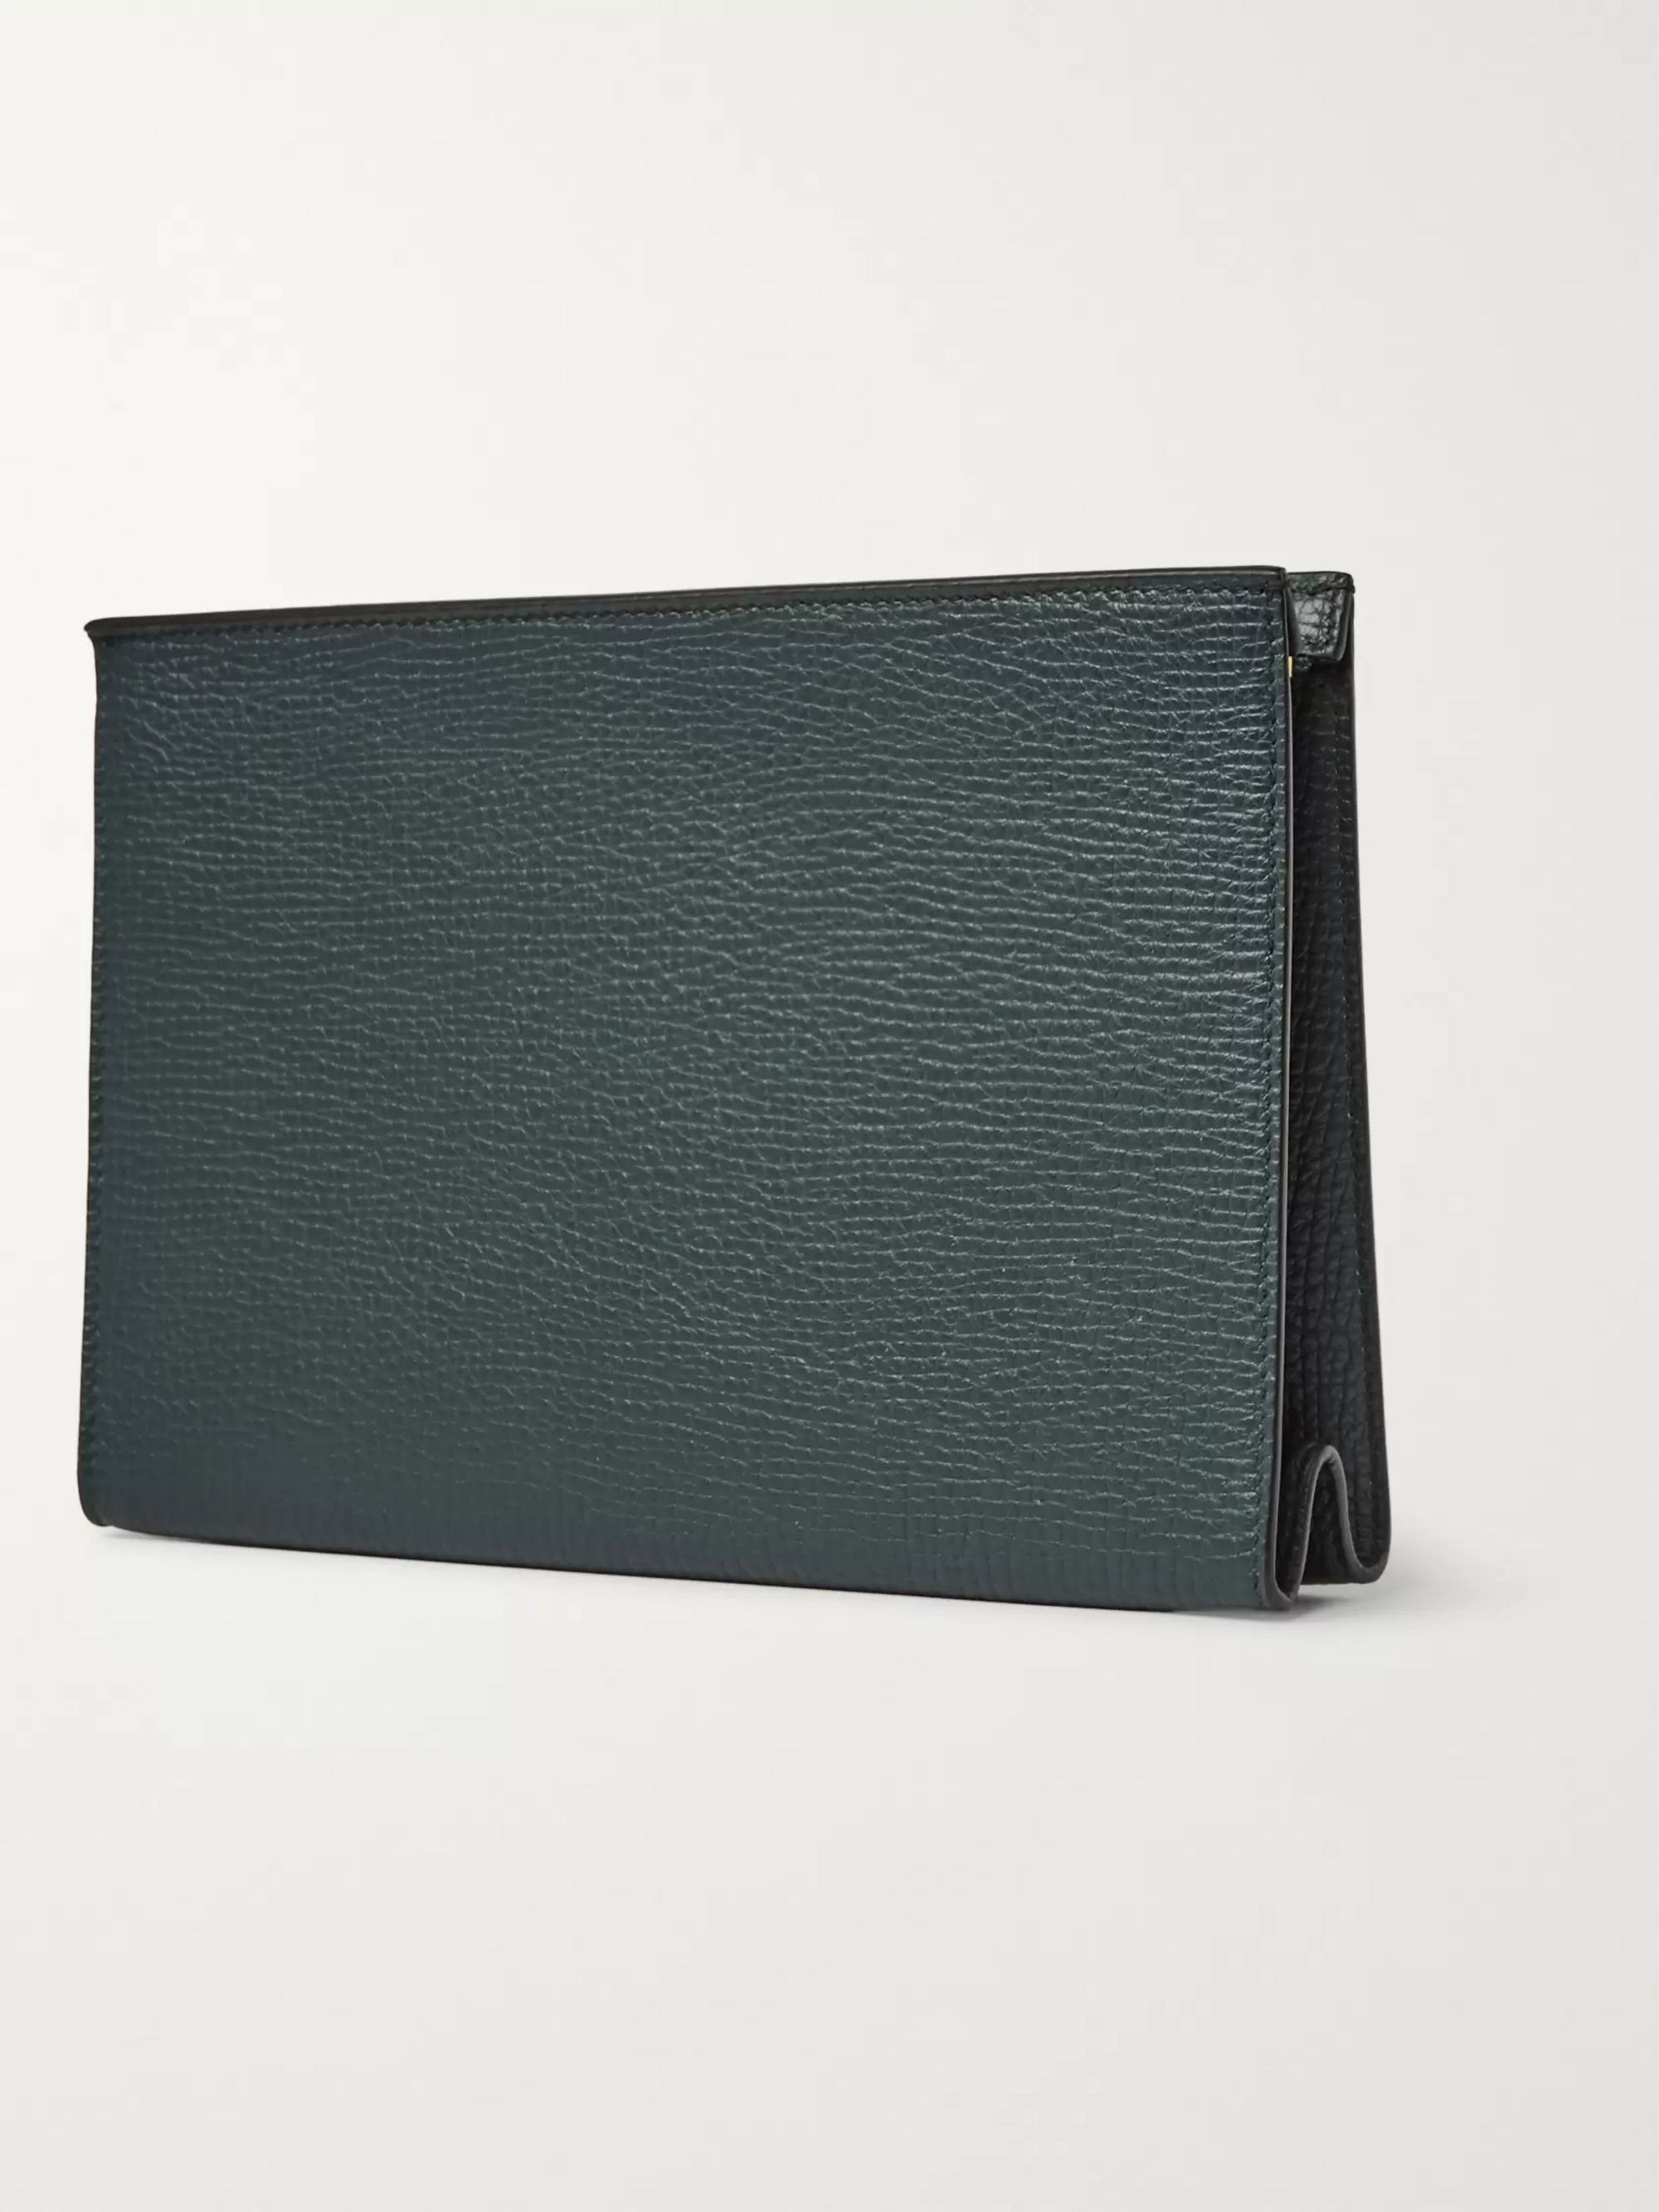 Smythson Full-Grain Leather Pouch